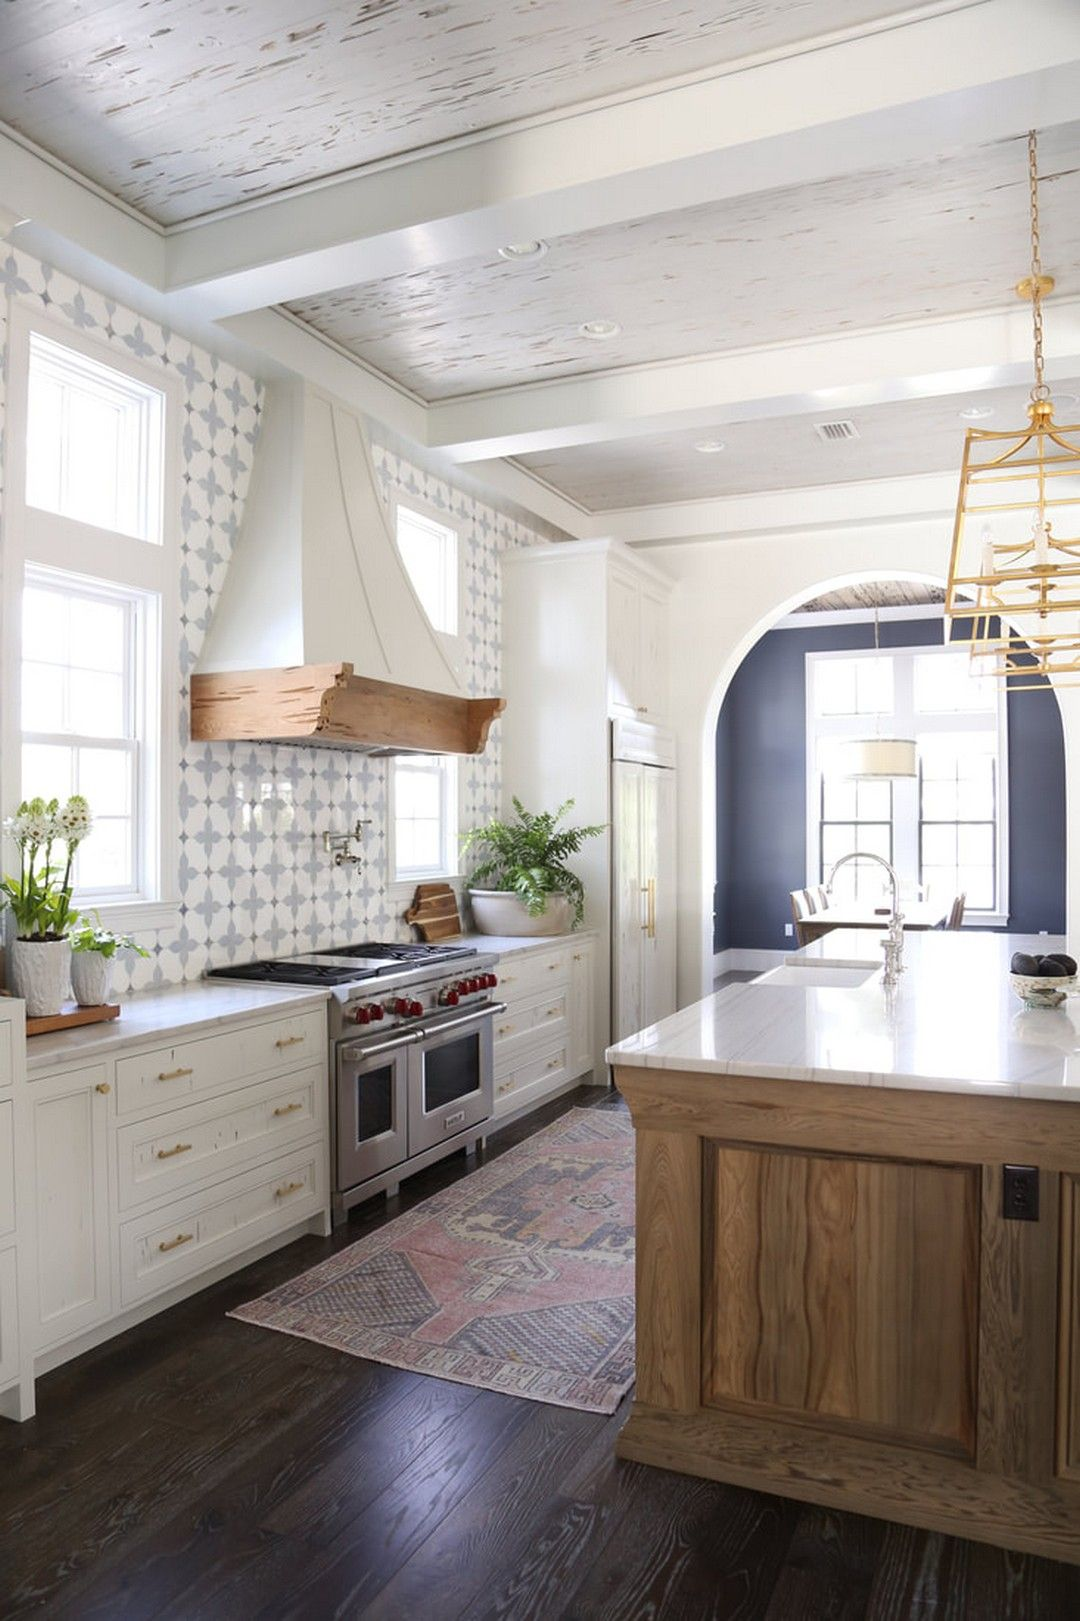 Make it work smart kitchen design solutions for narrow galley kitchens cabinet open cubbies above the cabinets for stashing cookbooks and infrequently used